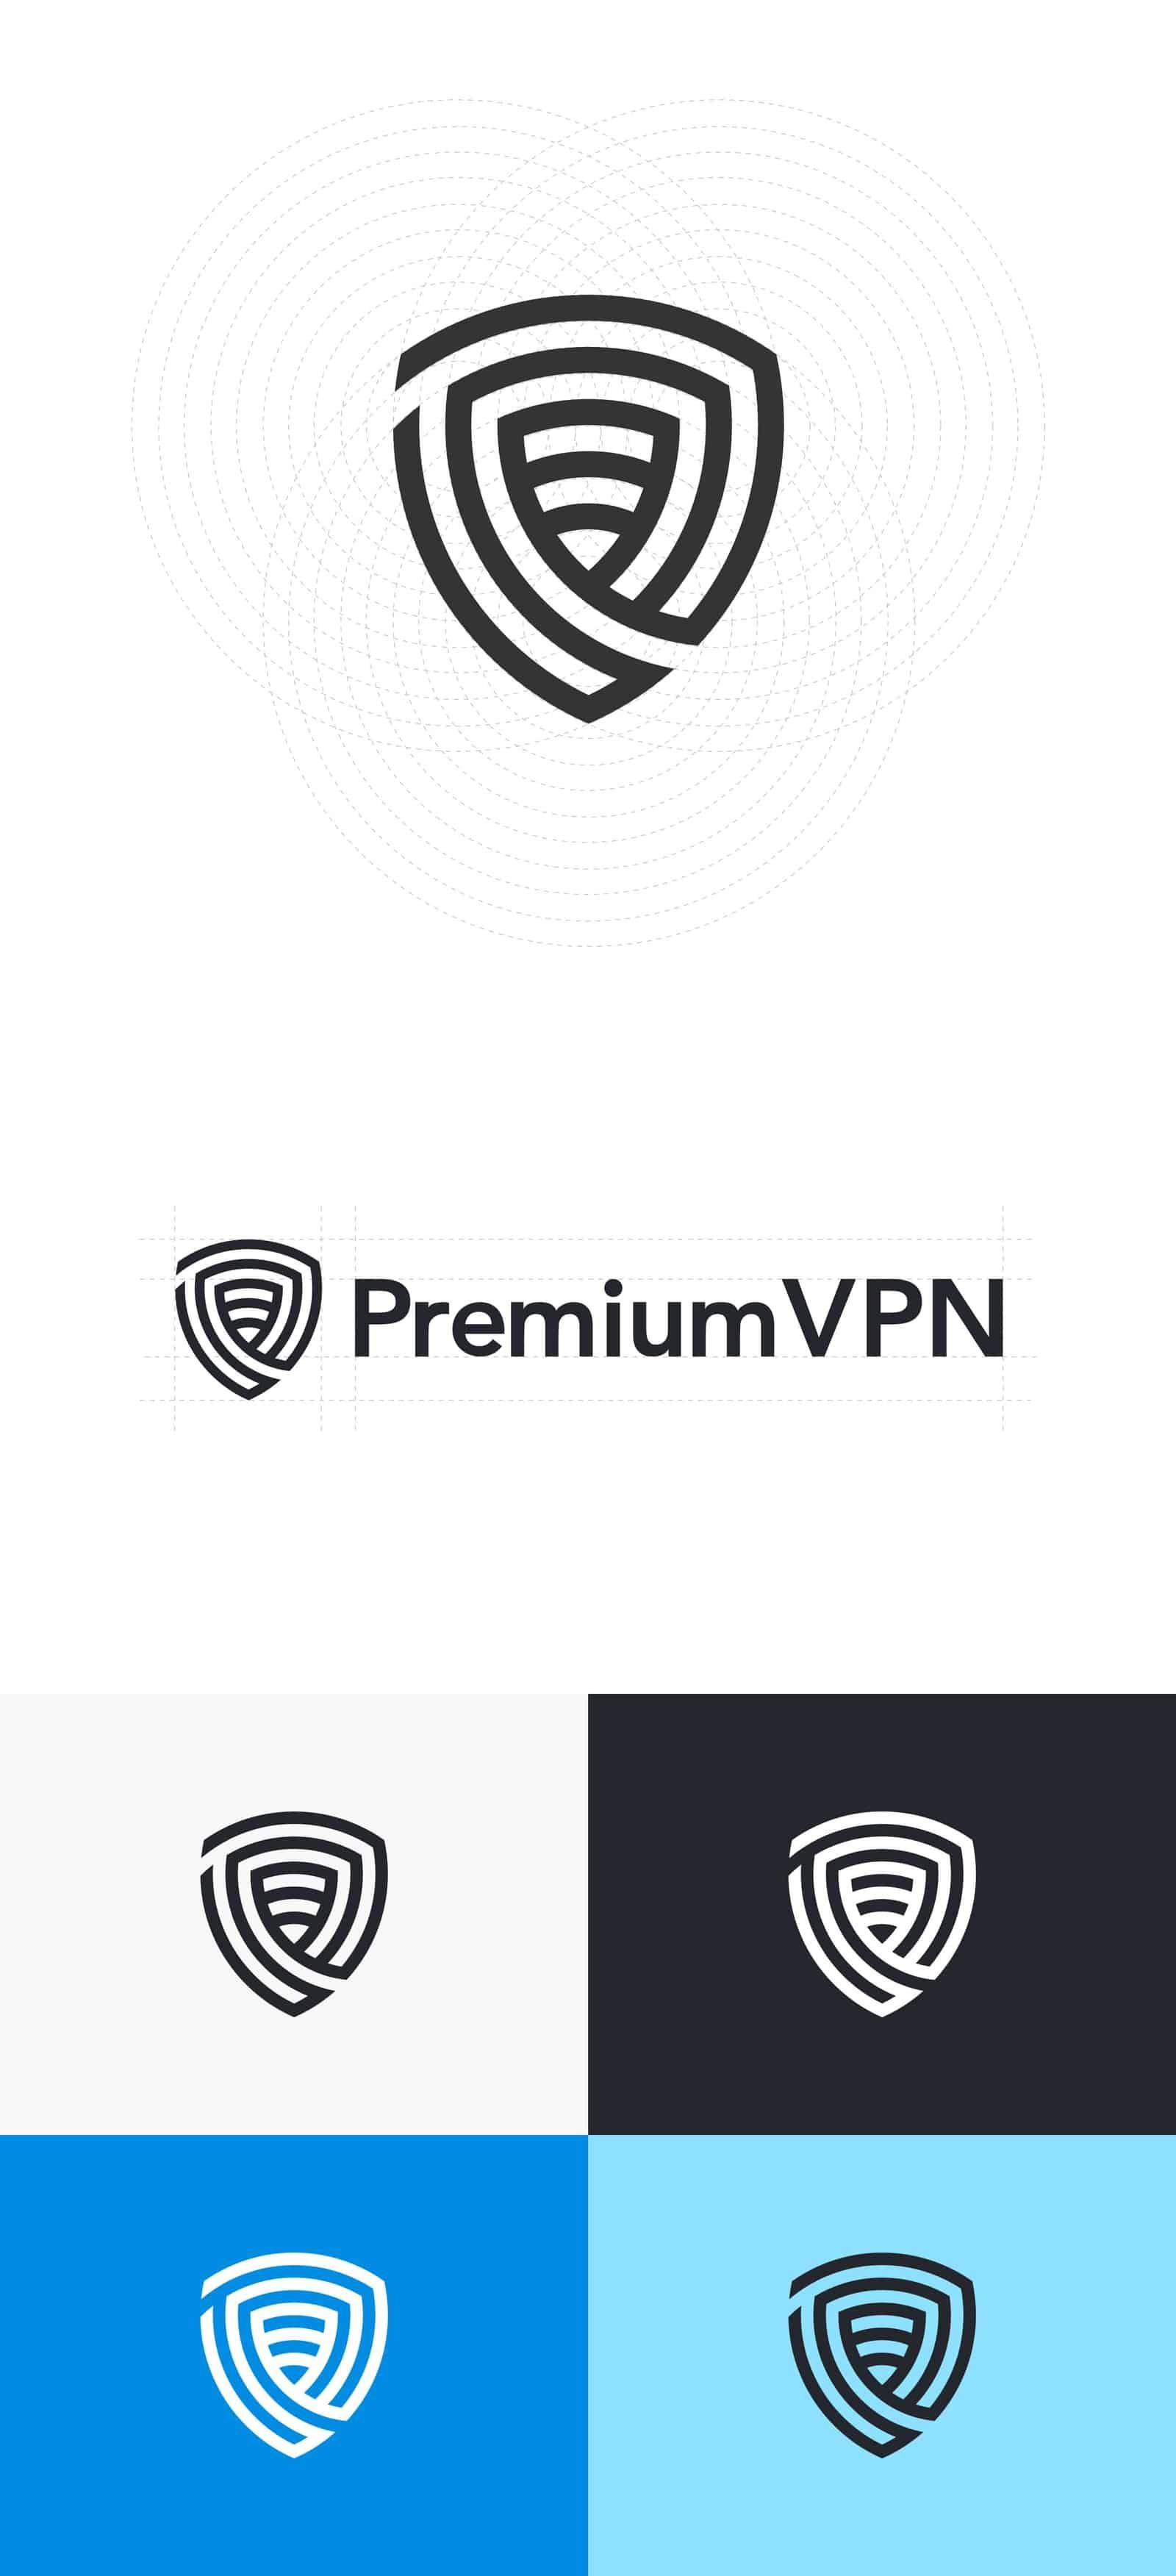 PremiumVPN in 2020 Web design, My favorite things, Brand